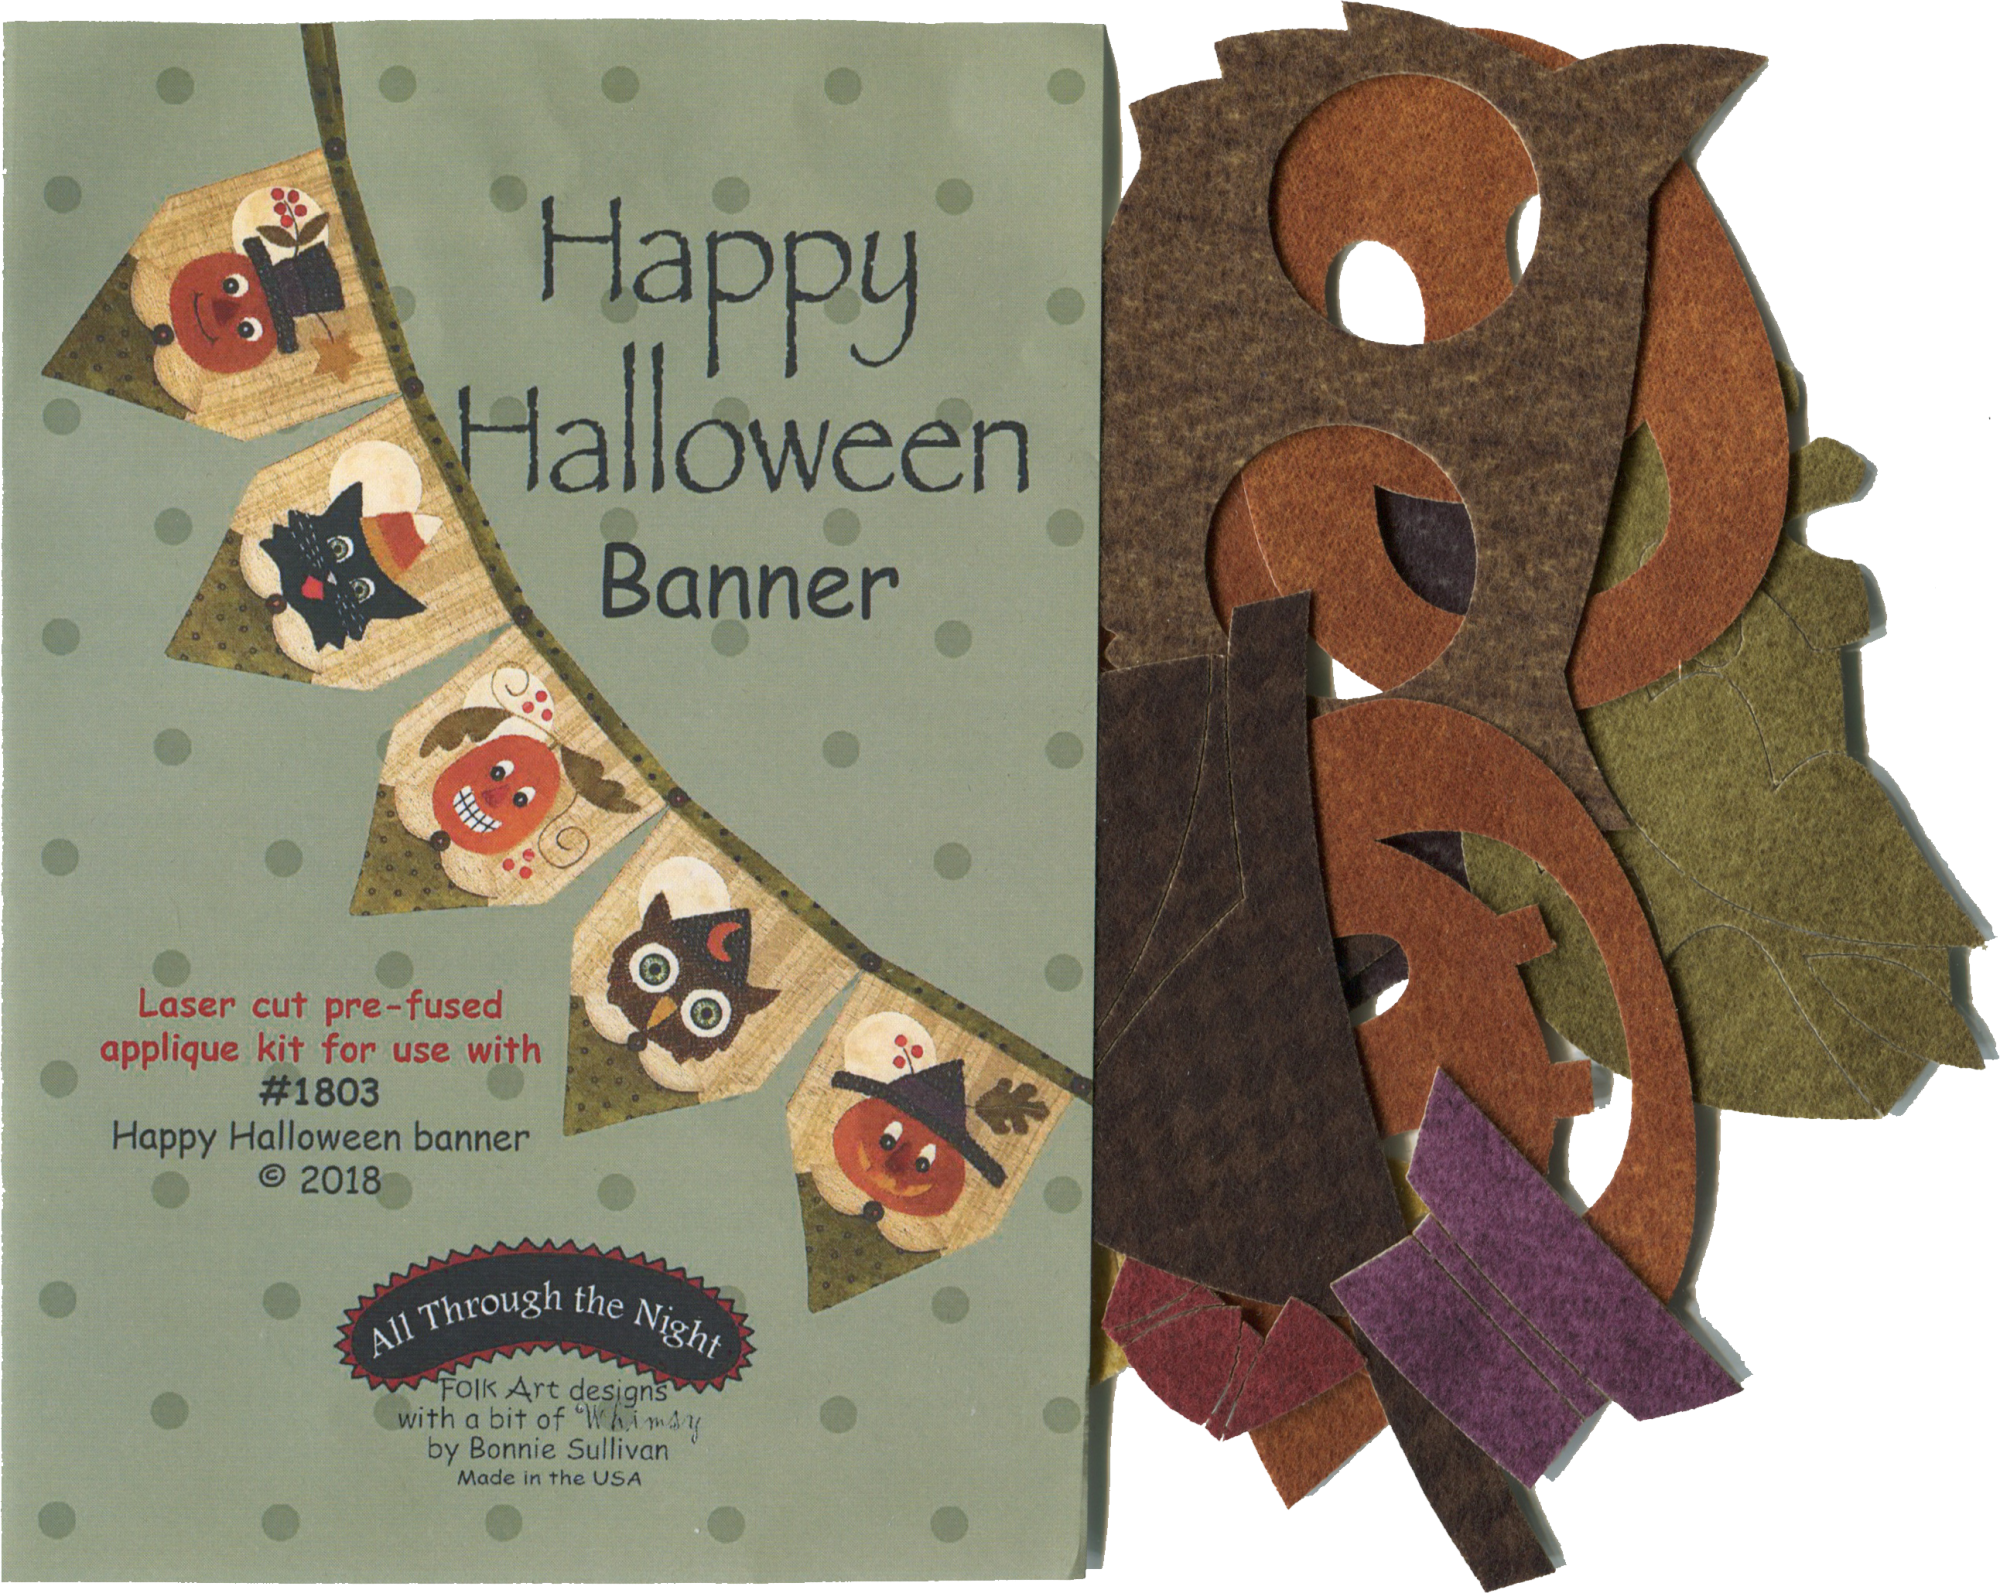 K1803 - Happy Halloween Banner Applique Kit